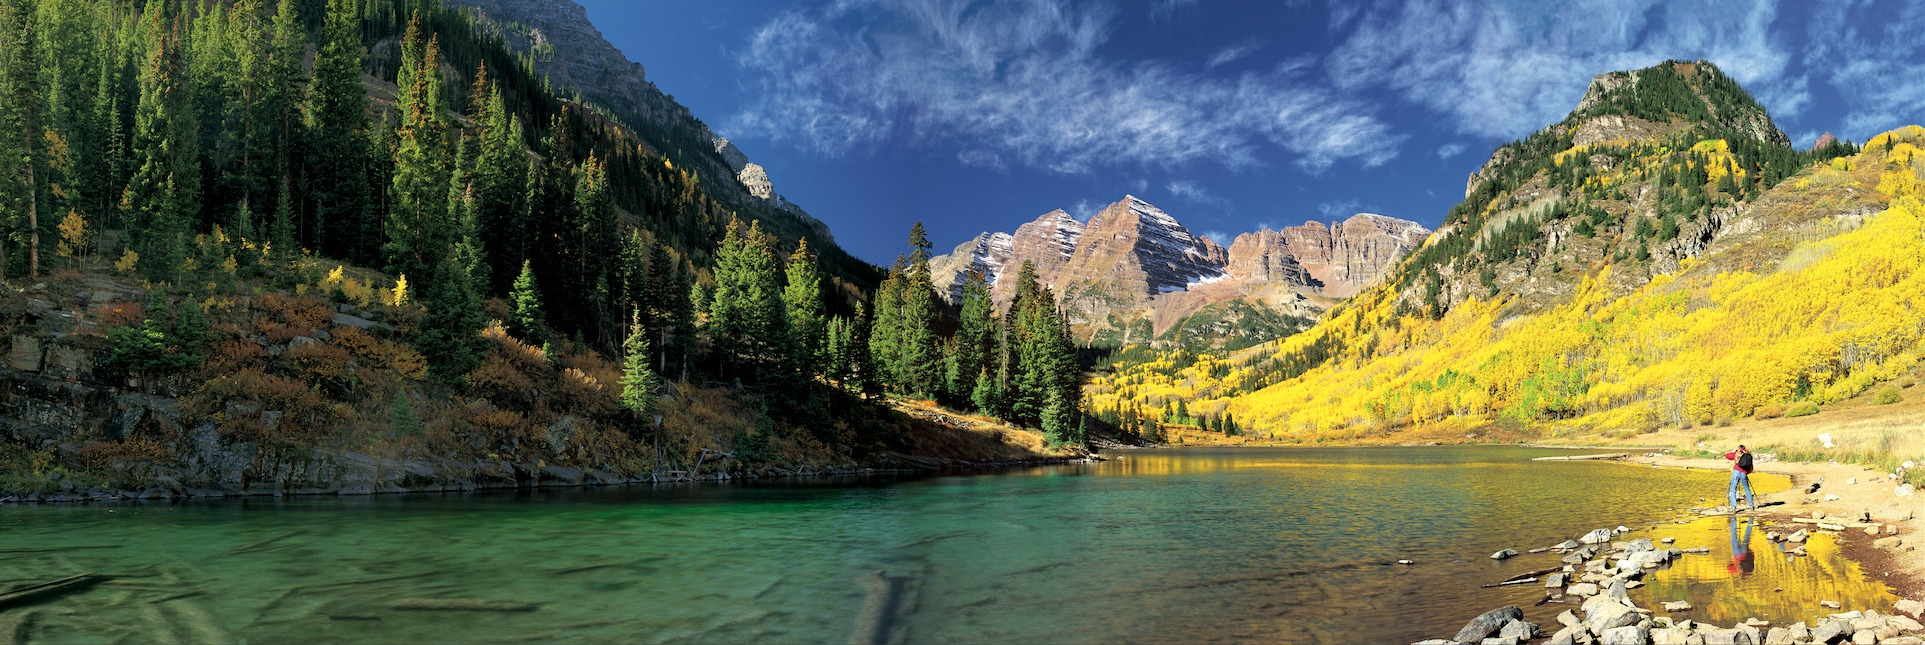 maroon bells lake at - photo #41